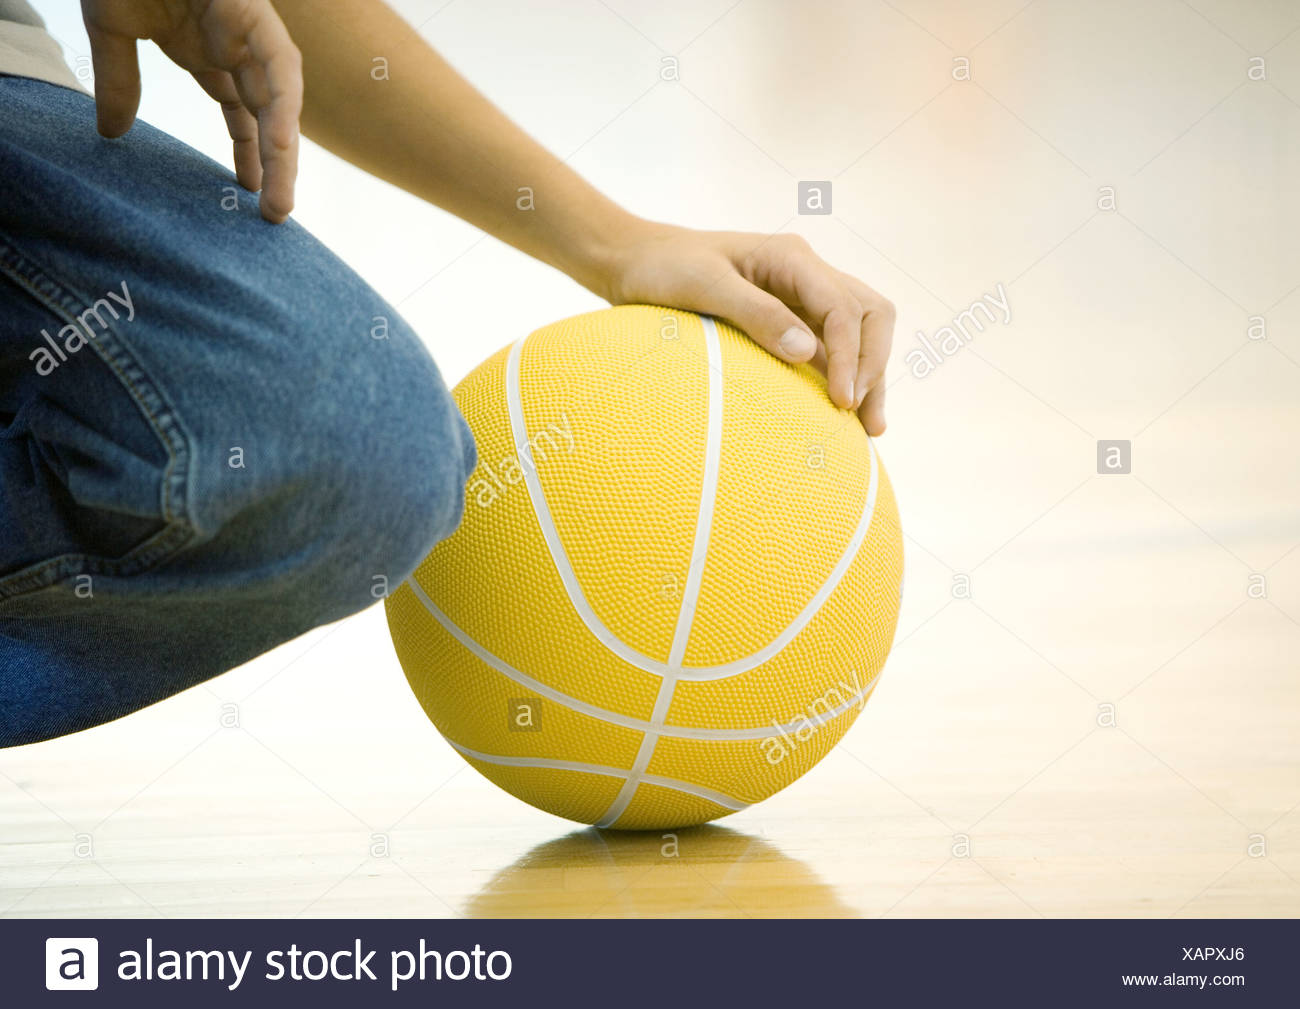 Teen boy crouching, holding basketball, close-up of hand on ball and knee - Stock Image